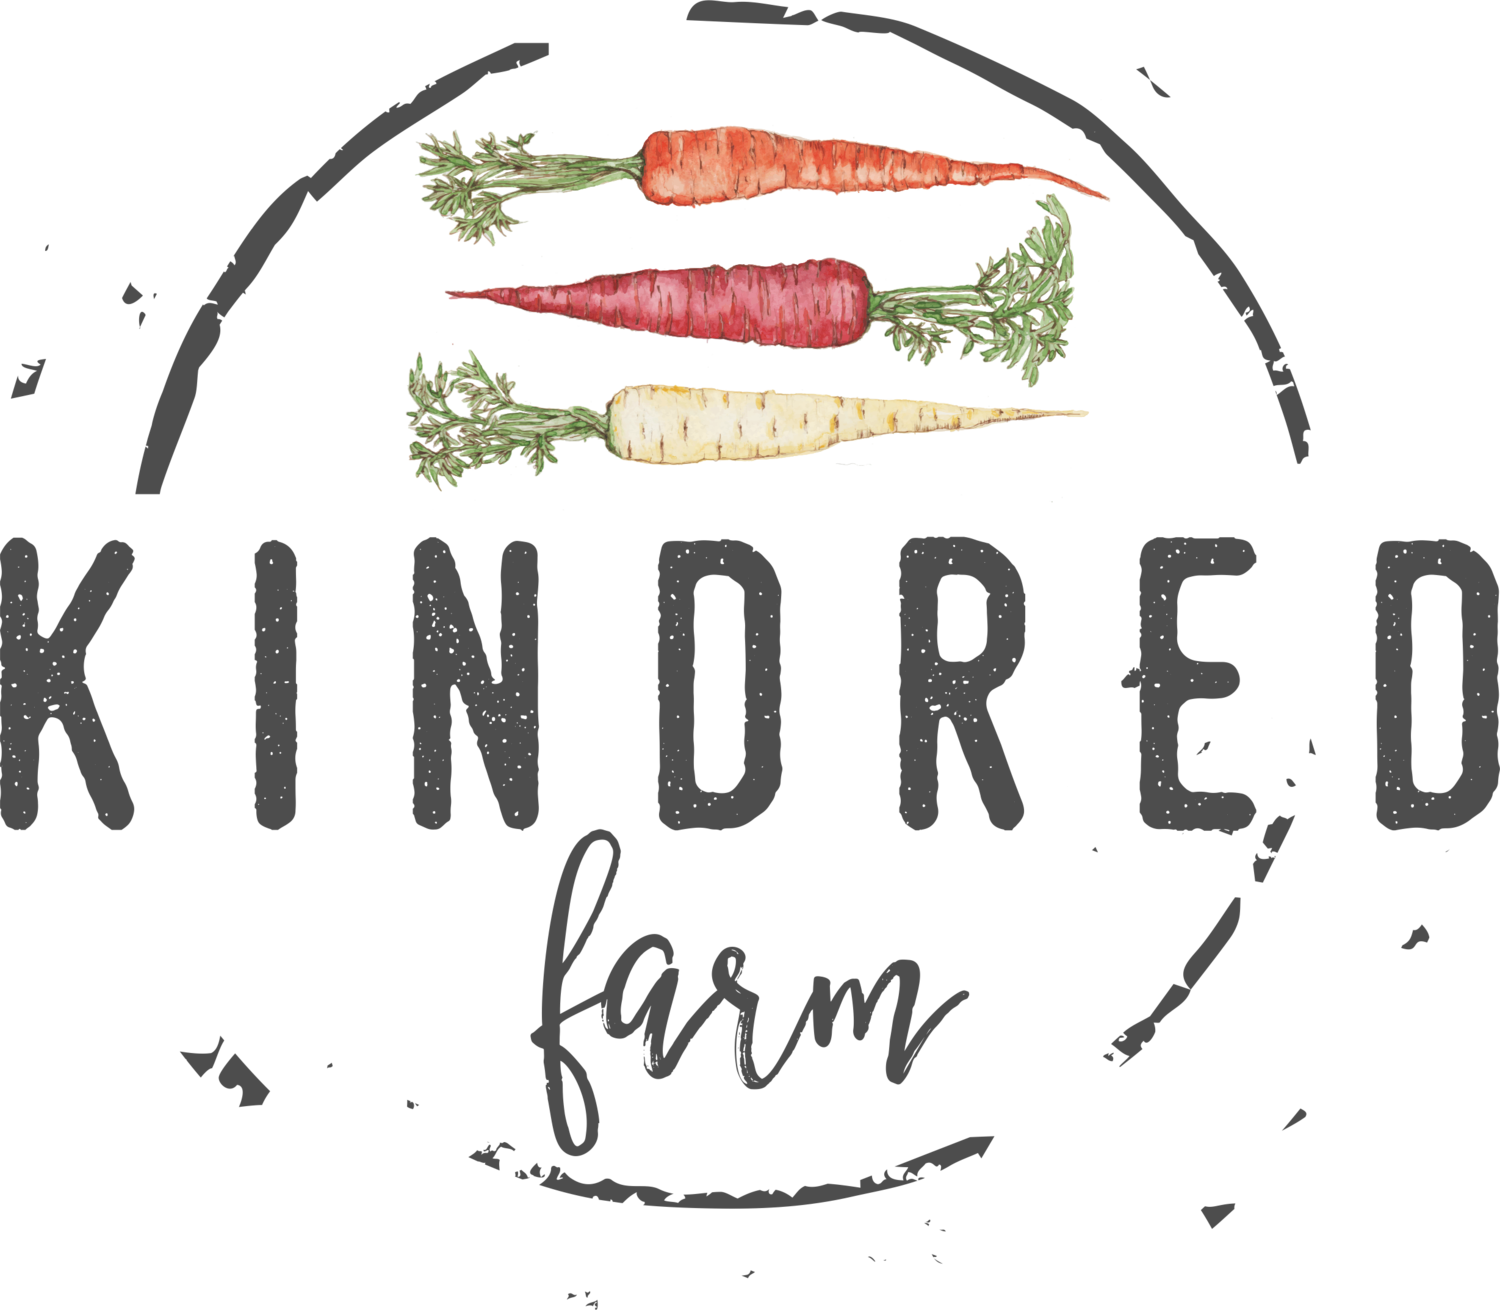 Kindred Farm